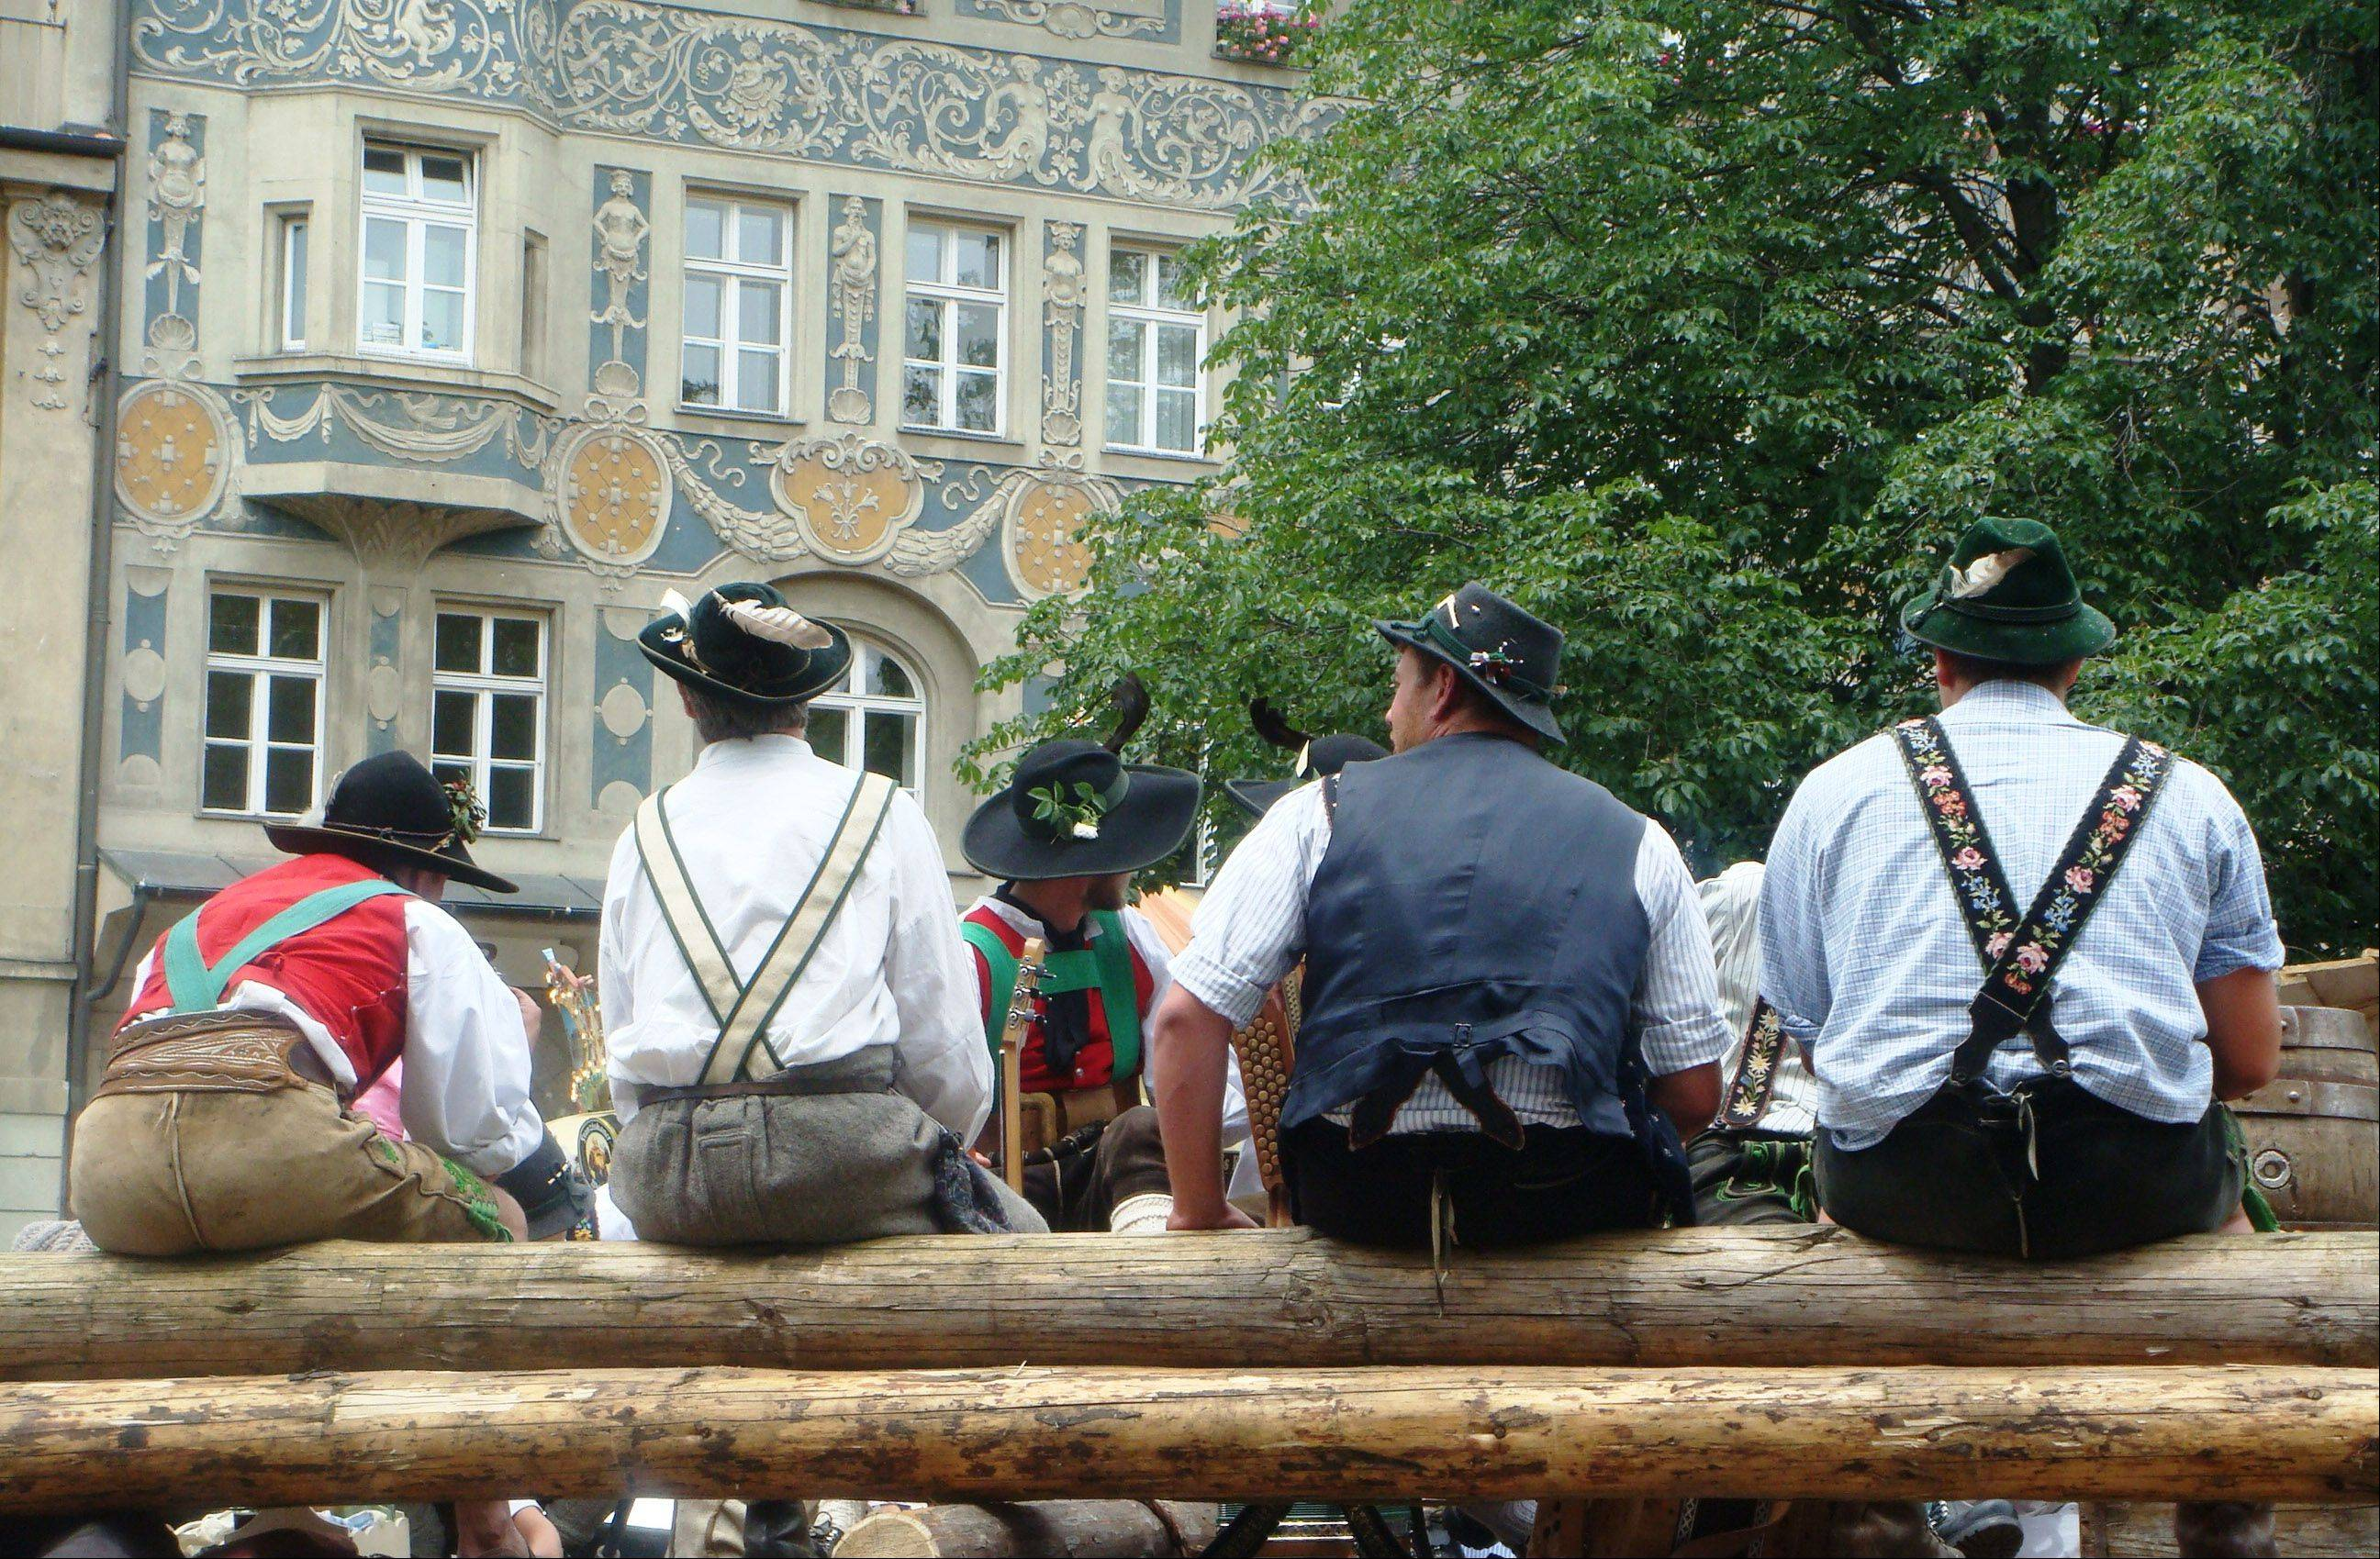 This was taken in Munich 2008 during the 500 year celebration of forming of the city of Munich.